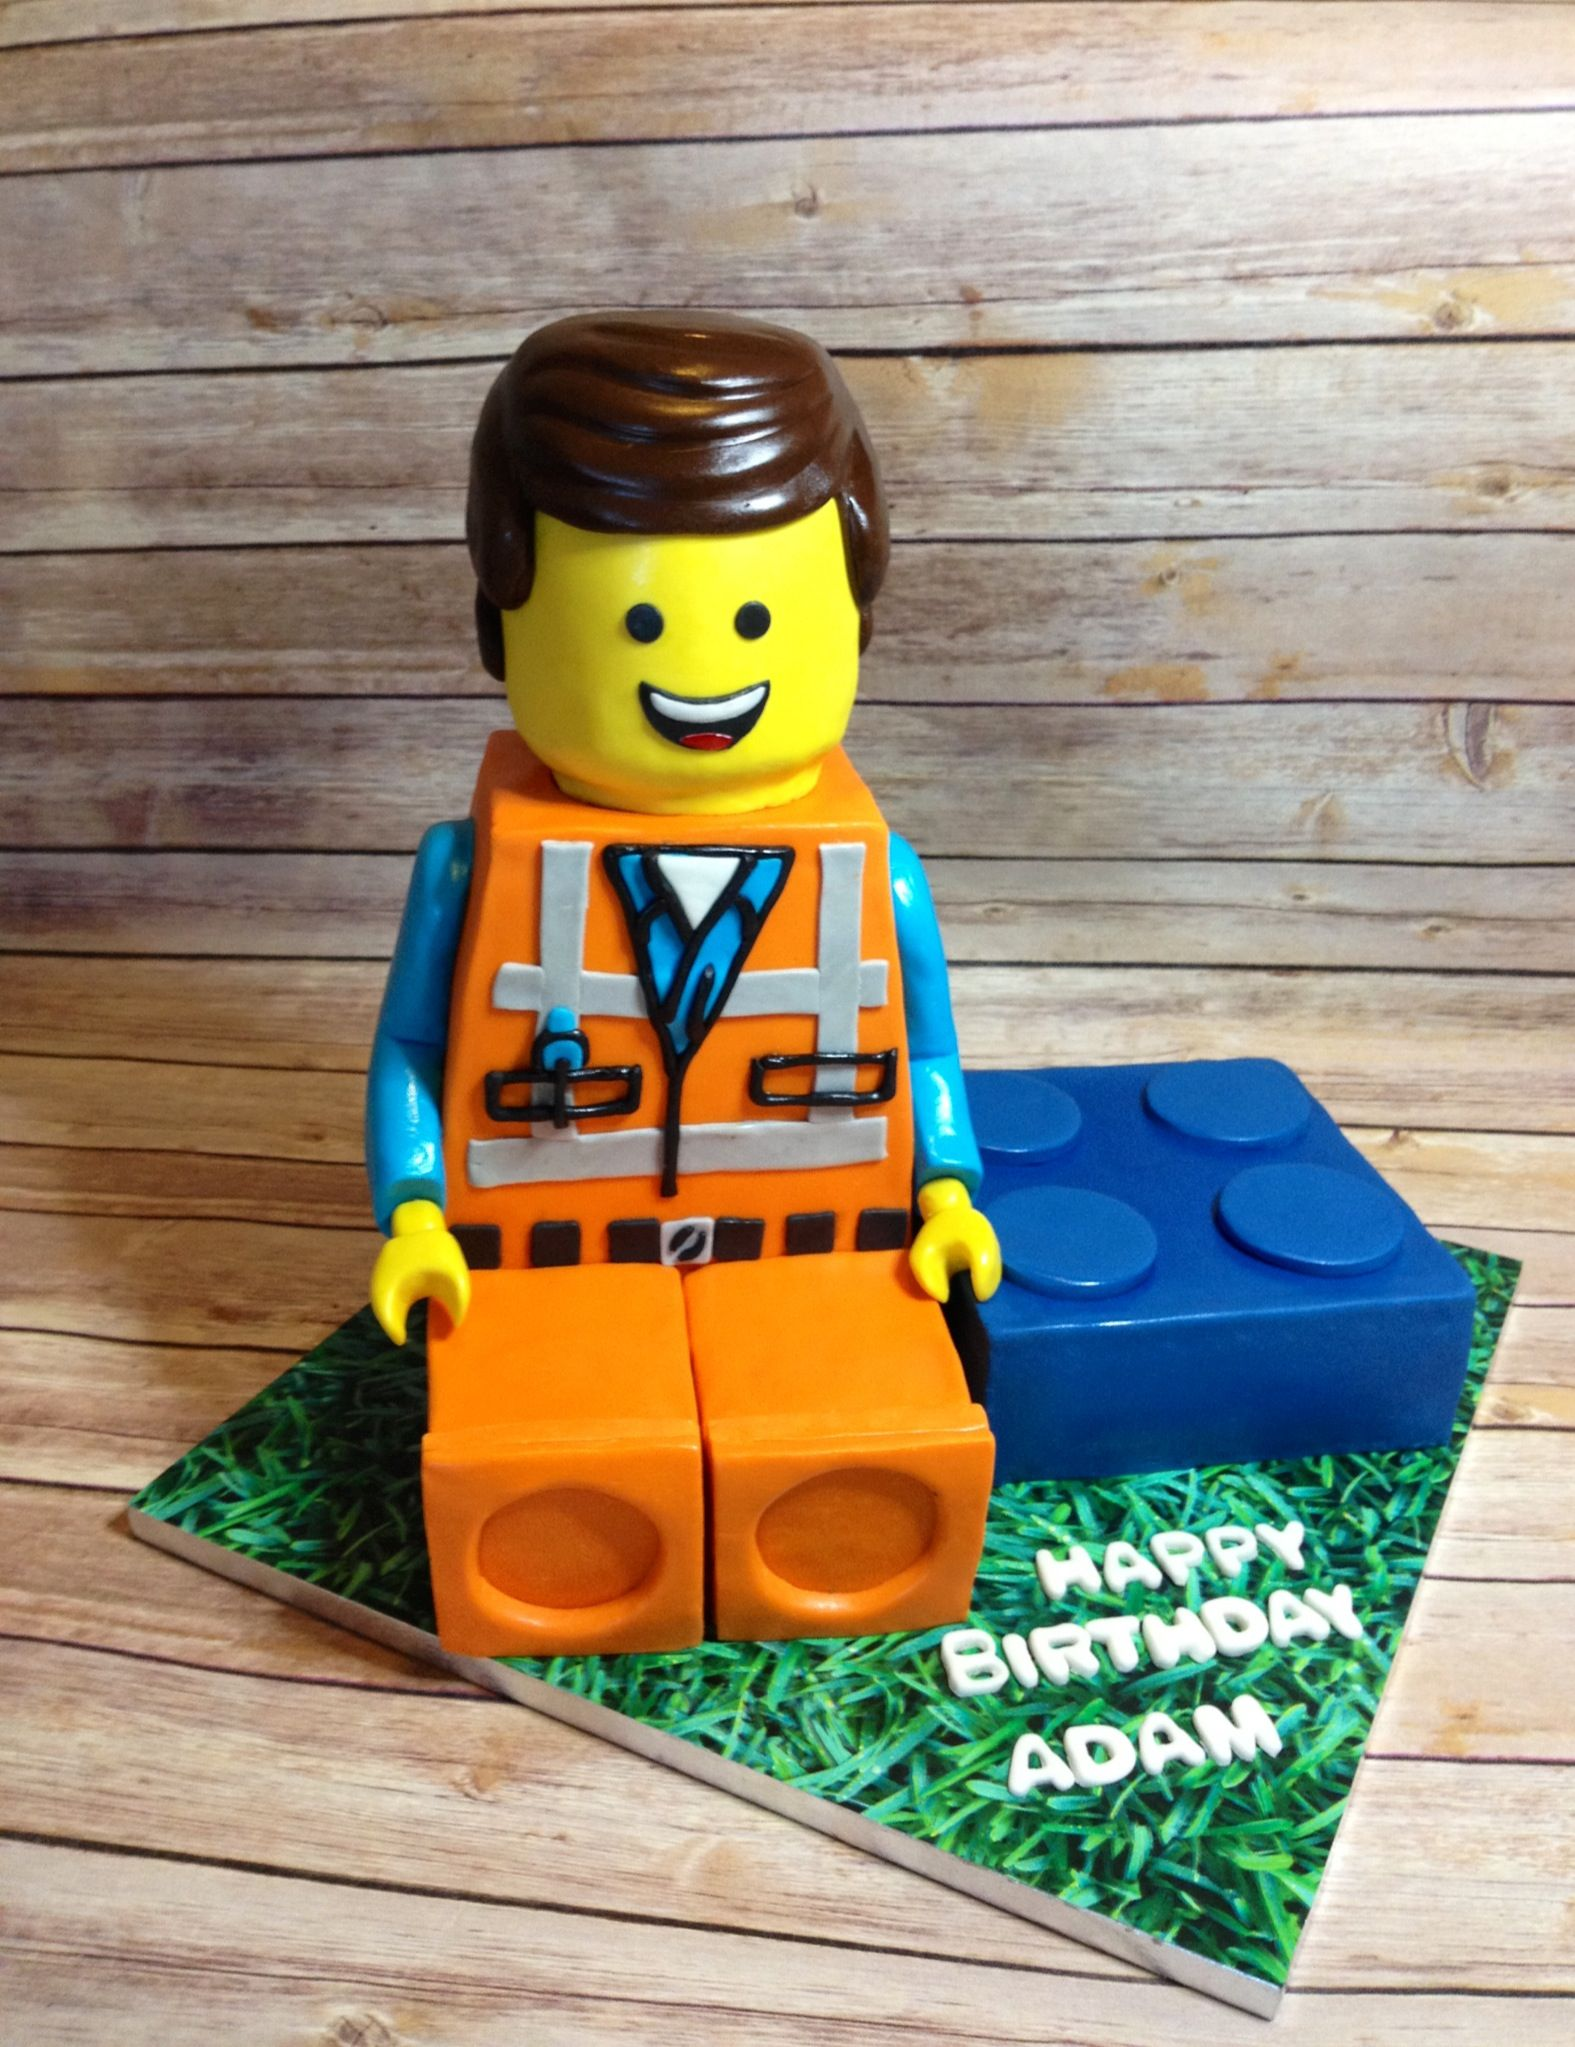 Lego man cake Lego man cake, Cakes for men, Lego man